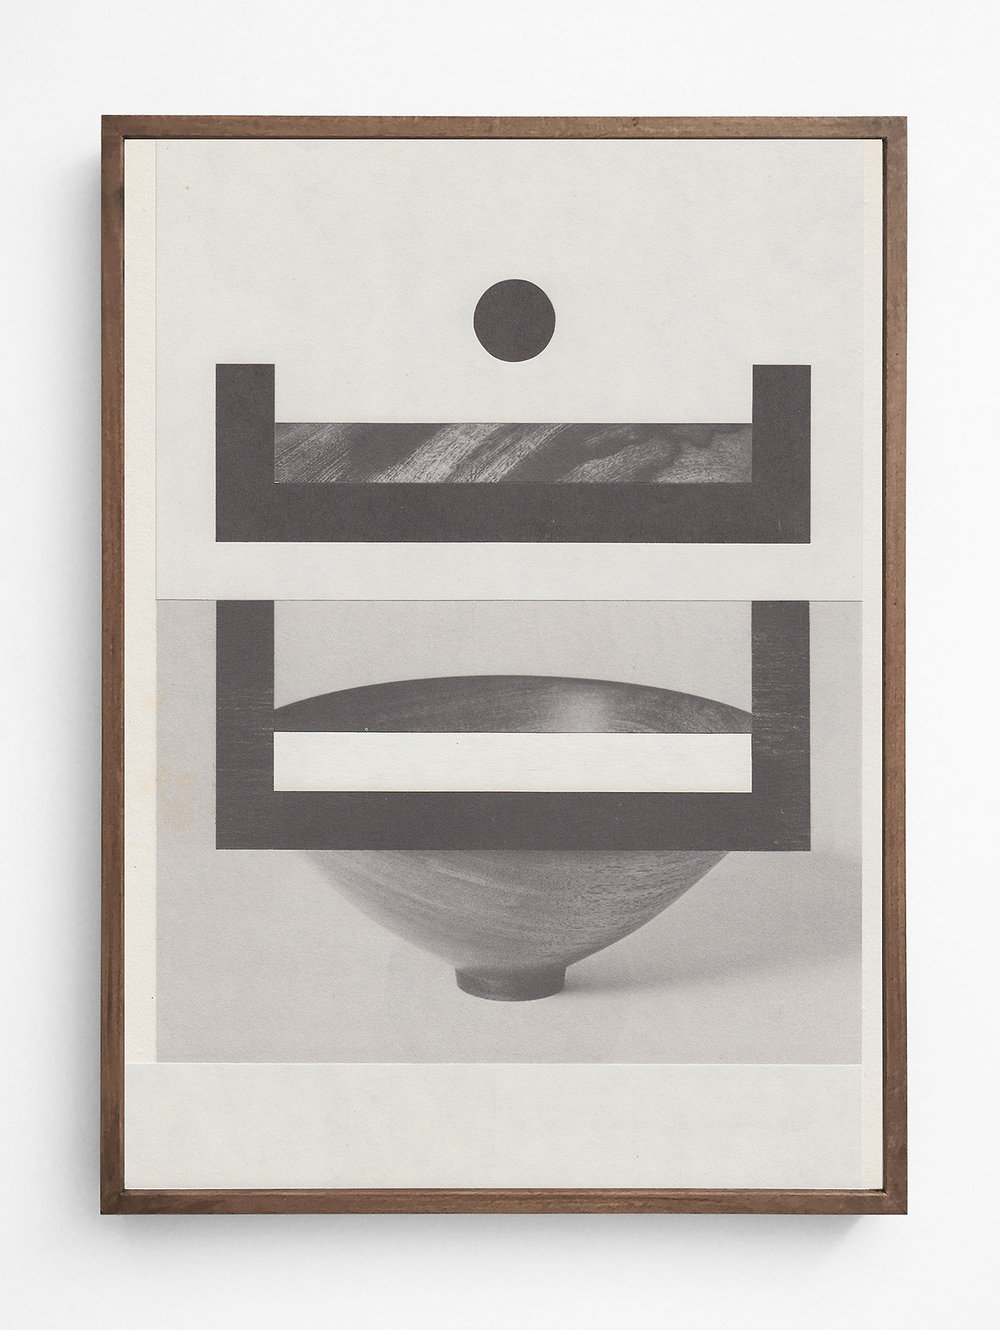 yama-bato :    Louis Reith    http://www.loomgallery.com/artists/louis-reith/